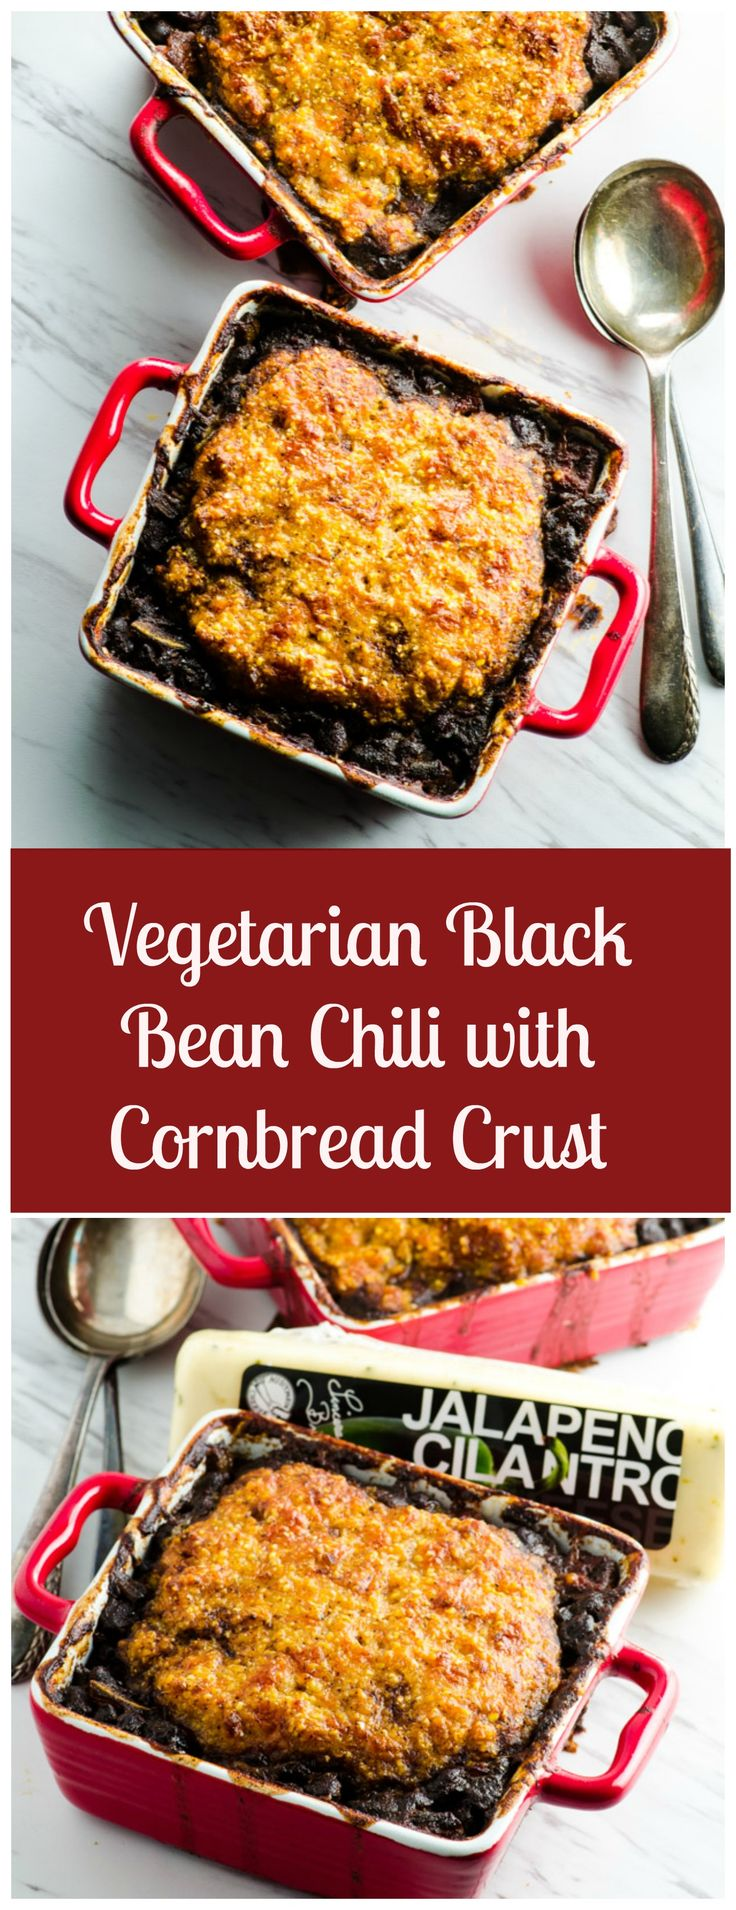 Cheesy Corn Bread Crusted Black Bean Chili, with a homemade corn bread and cheese crust, for a wonderful contrast of flavors and textures.